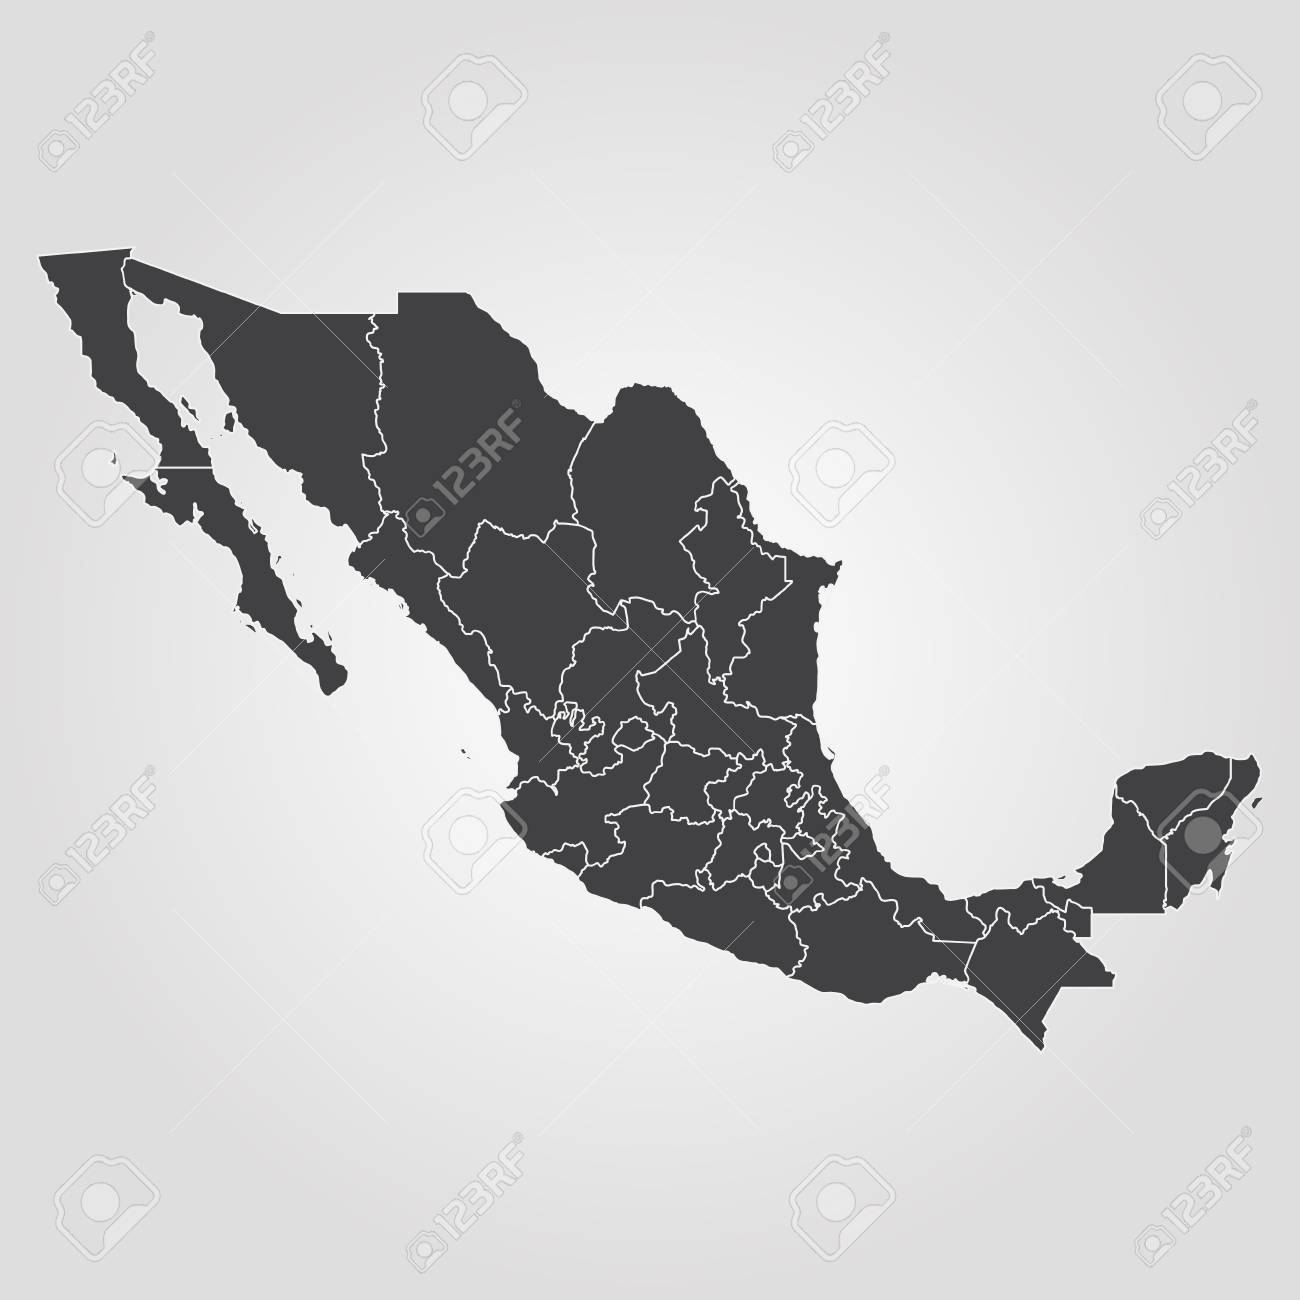 Map of Mexico. Vector illustration. World map - 90079972